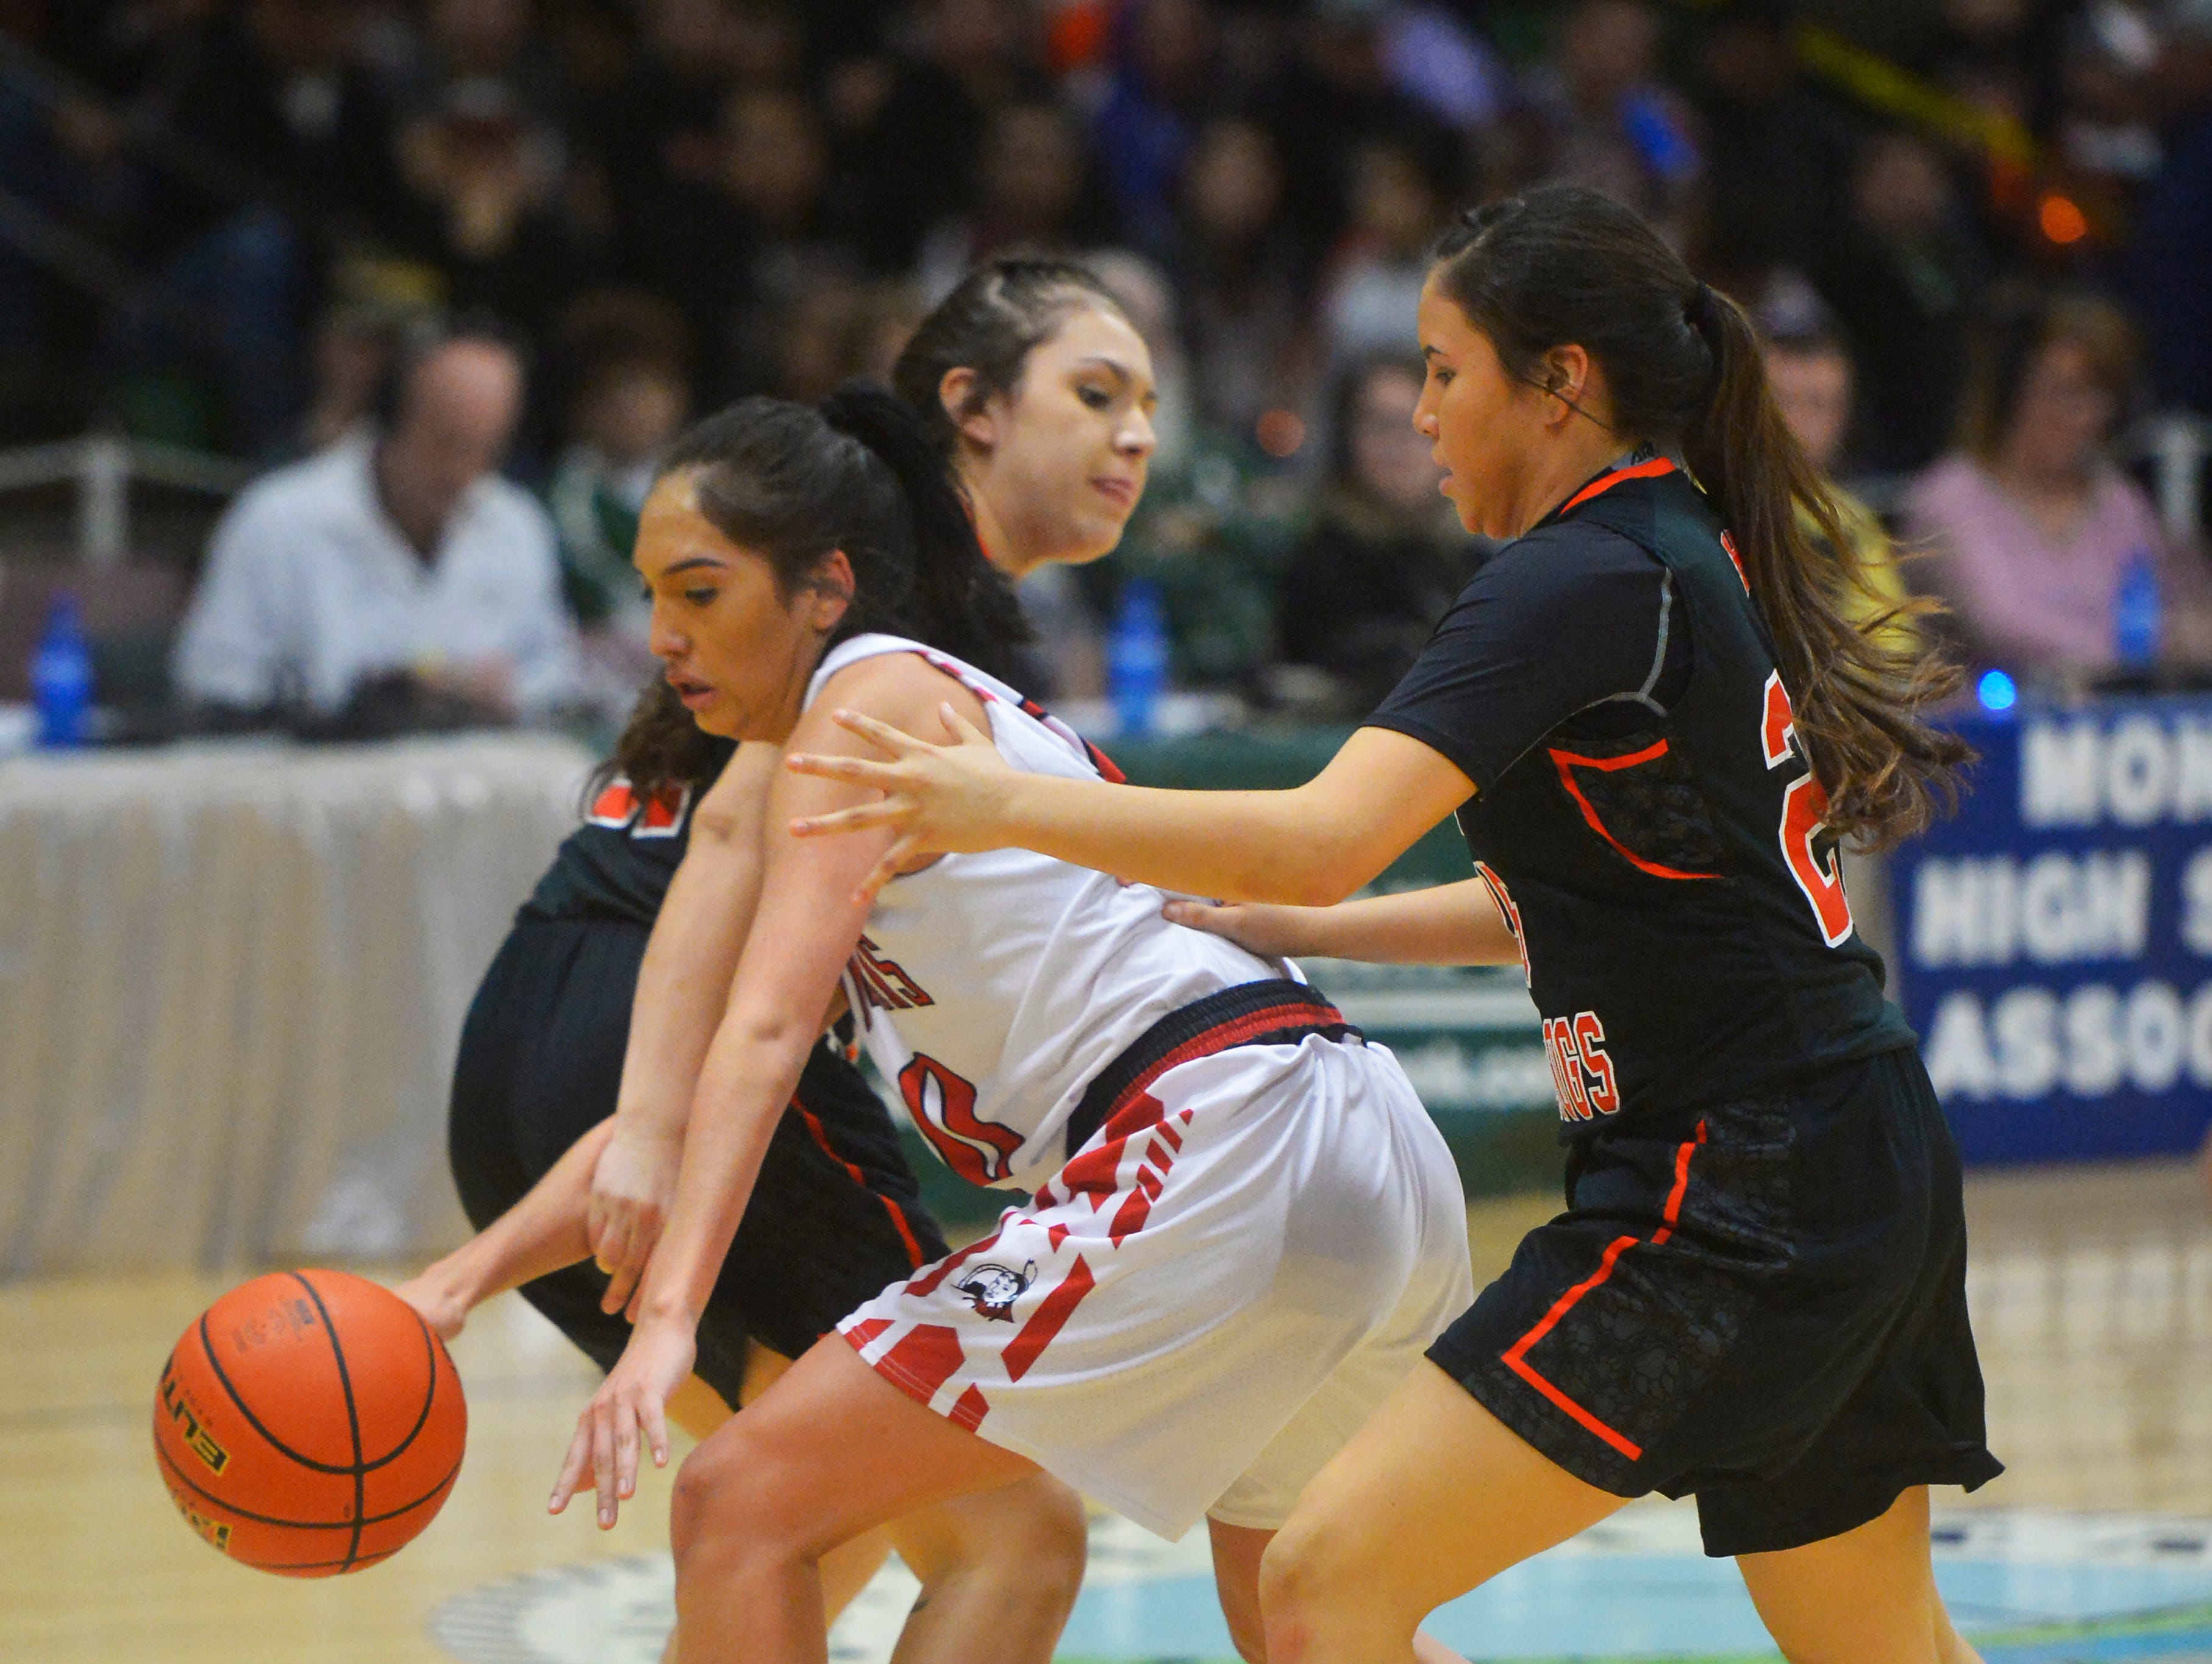 Browning and Hardin play in the first round of the Class A State Basketball Tournament in the Four Seasons Arena on Thursday.